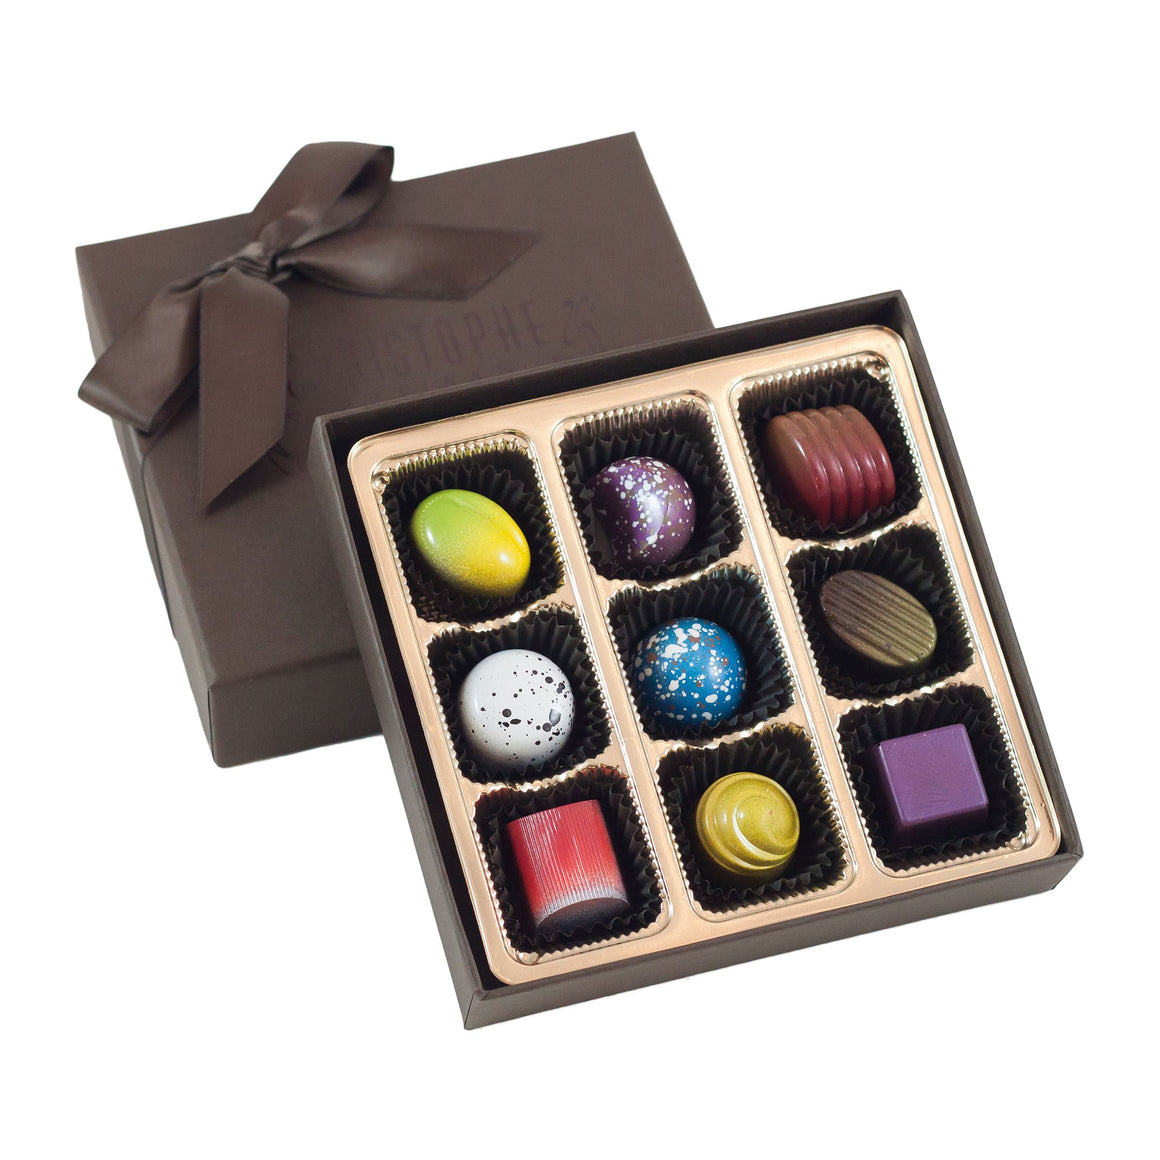 9 Piece Hand-Painted Chocolate Box